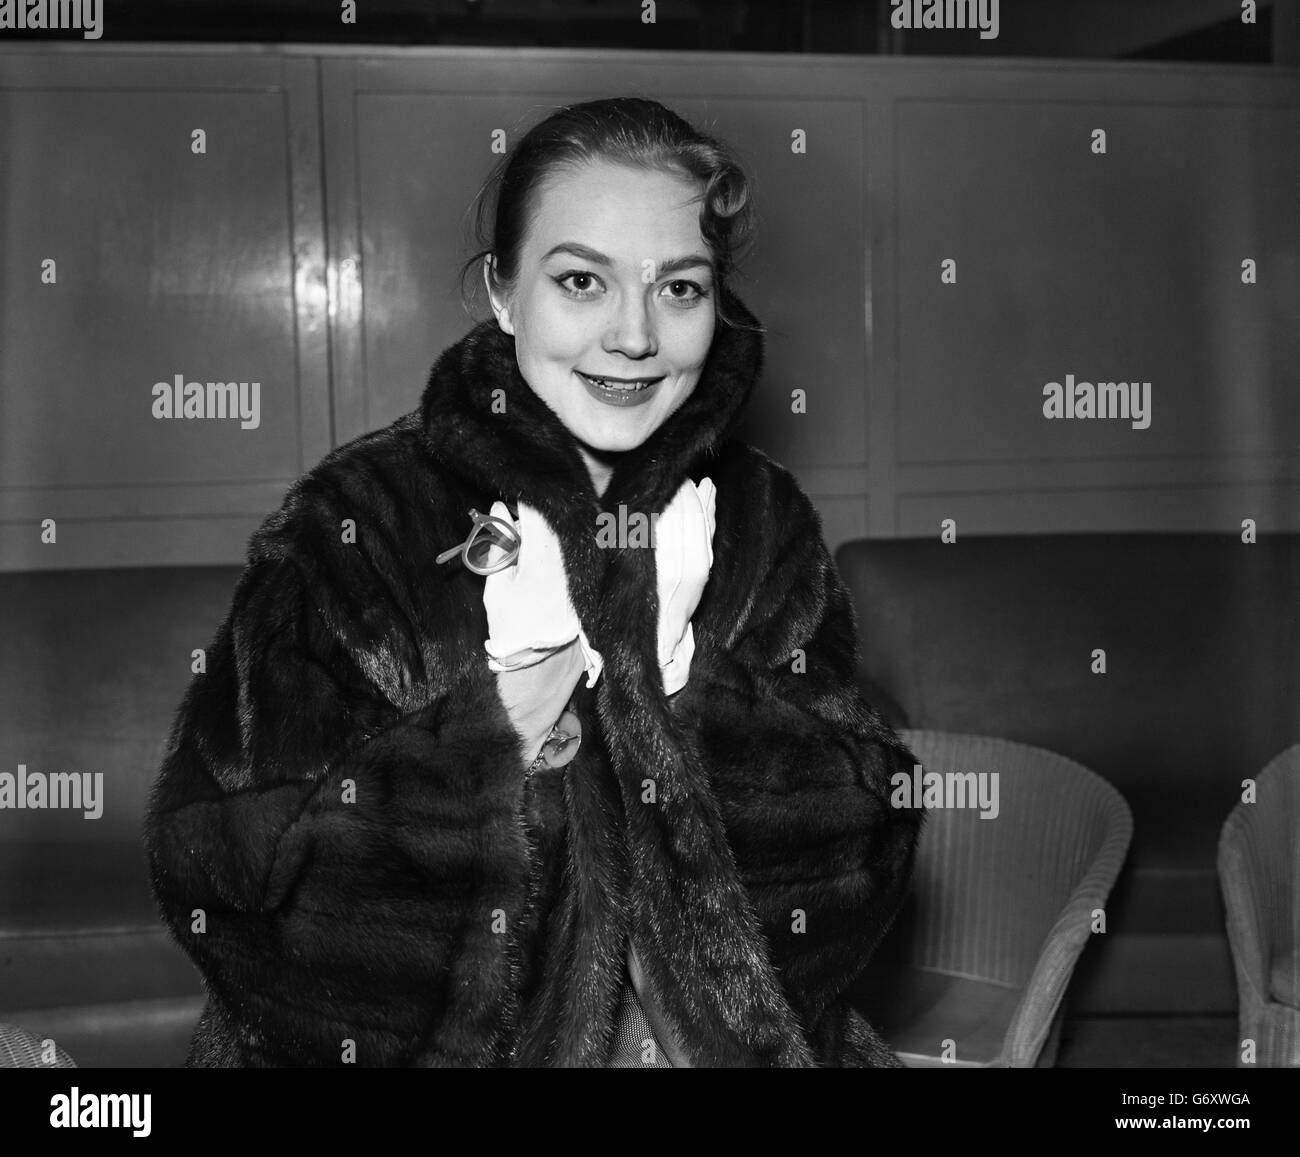 Film - Hollywood Actress Patrice Wymore - London Airport, London - Stock Image